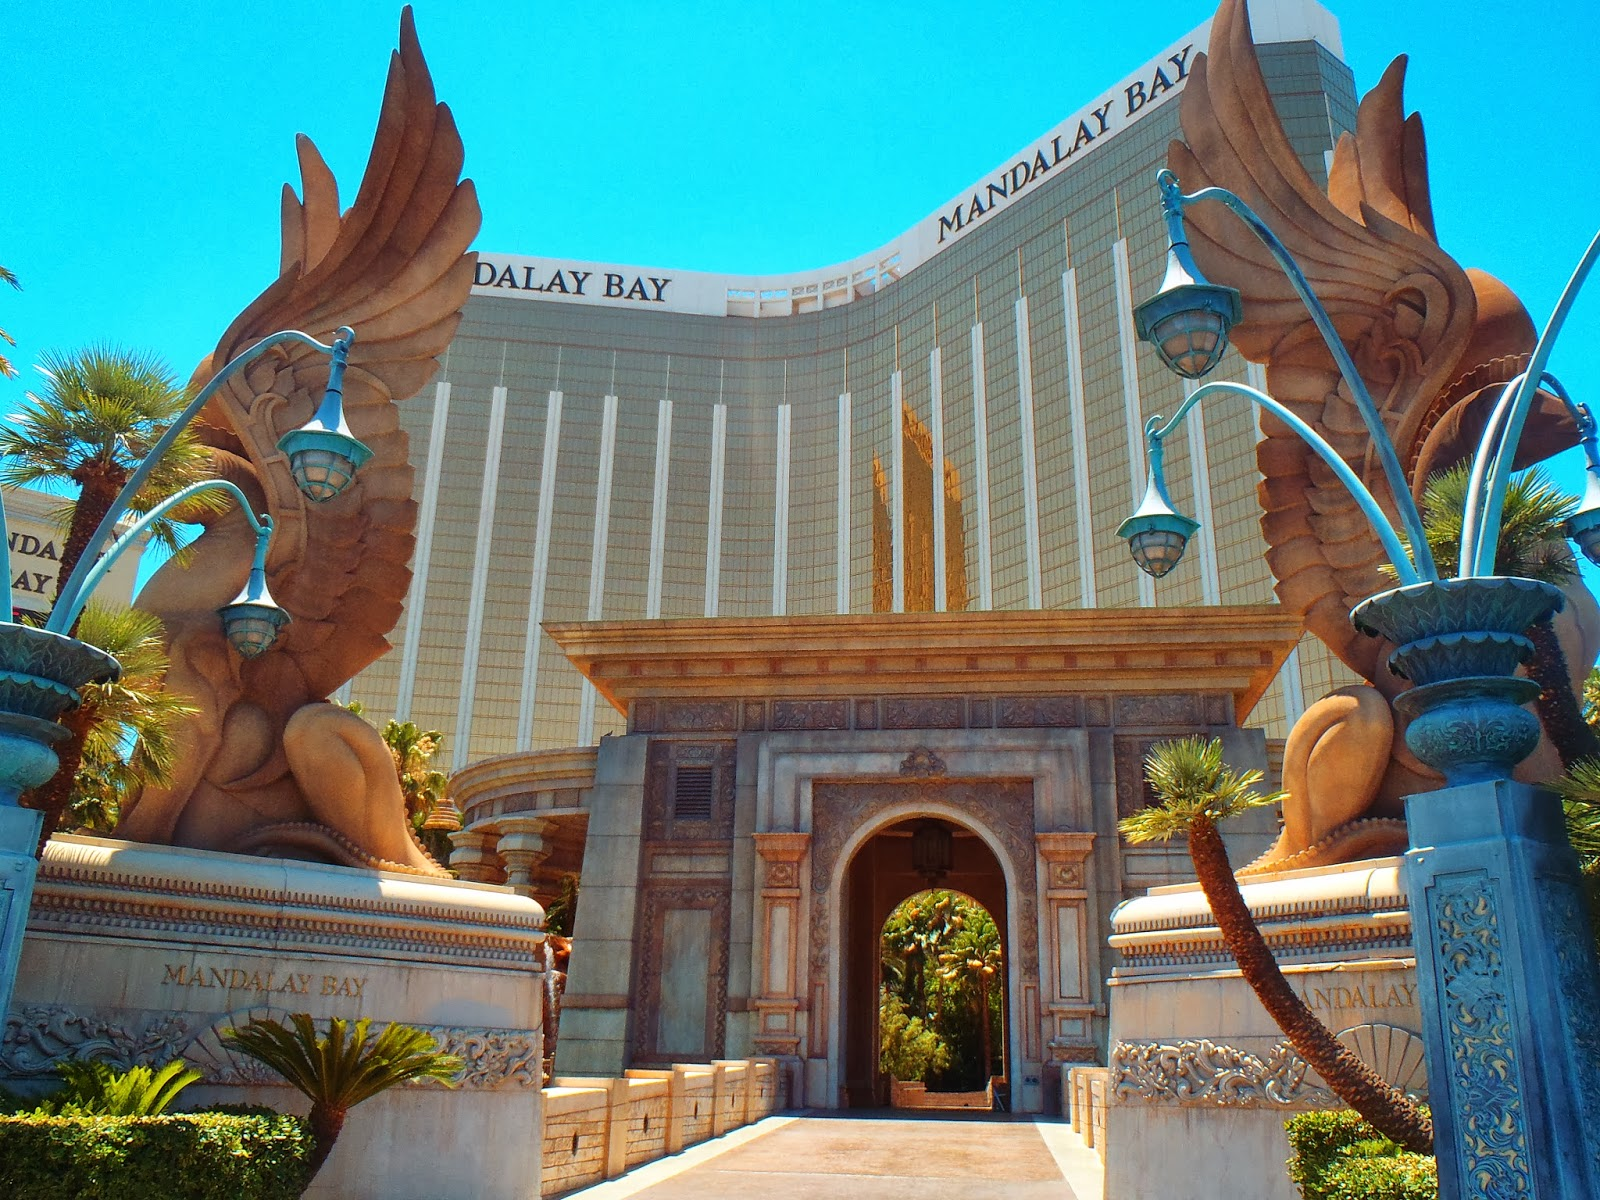 the stunning Mandalay Bay Hotel in Las Vegas